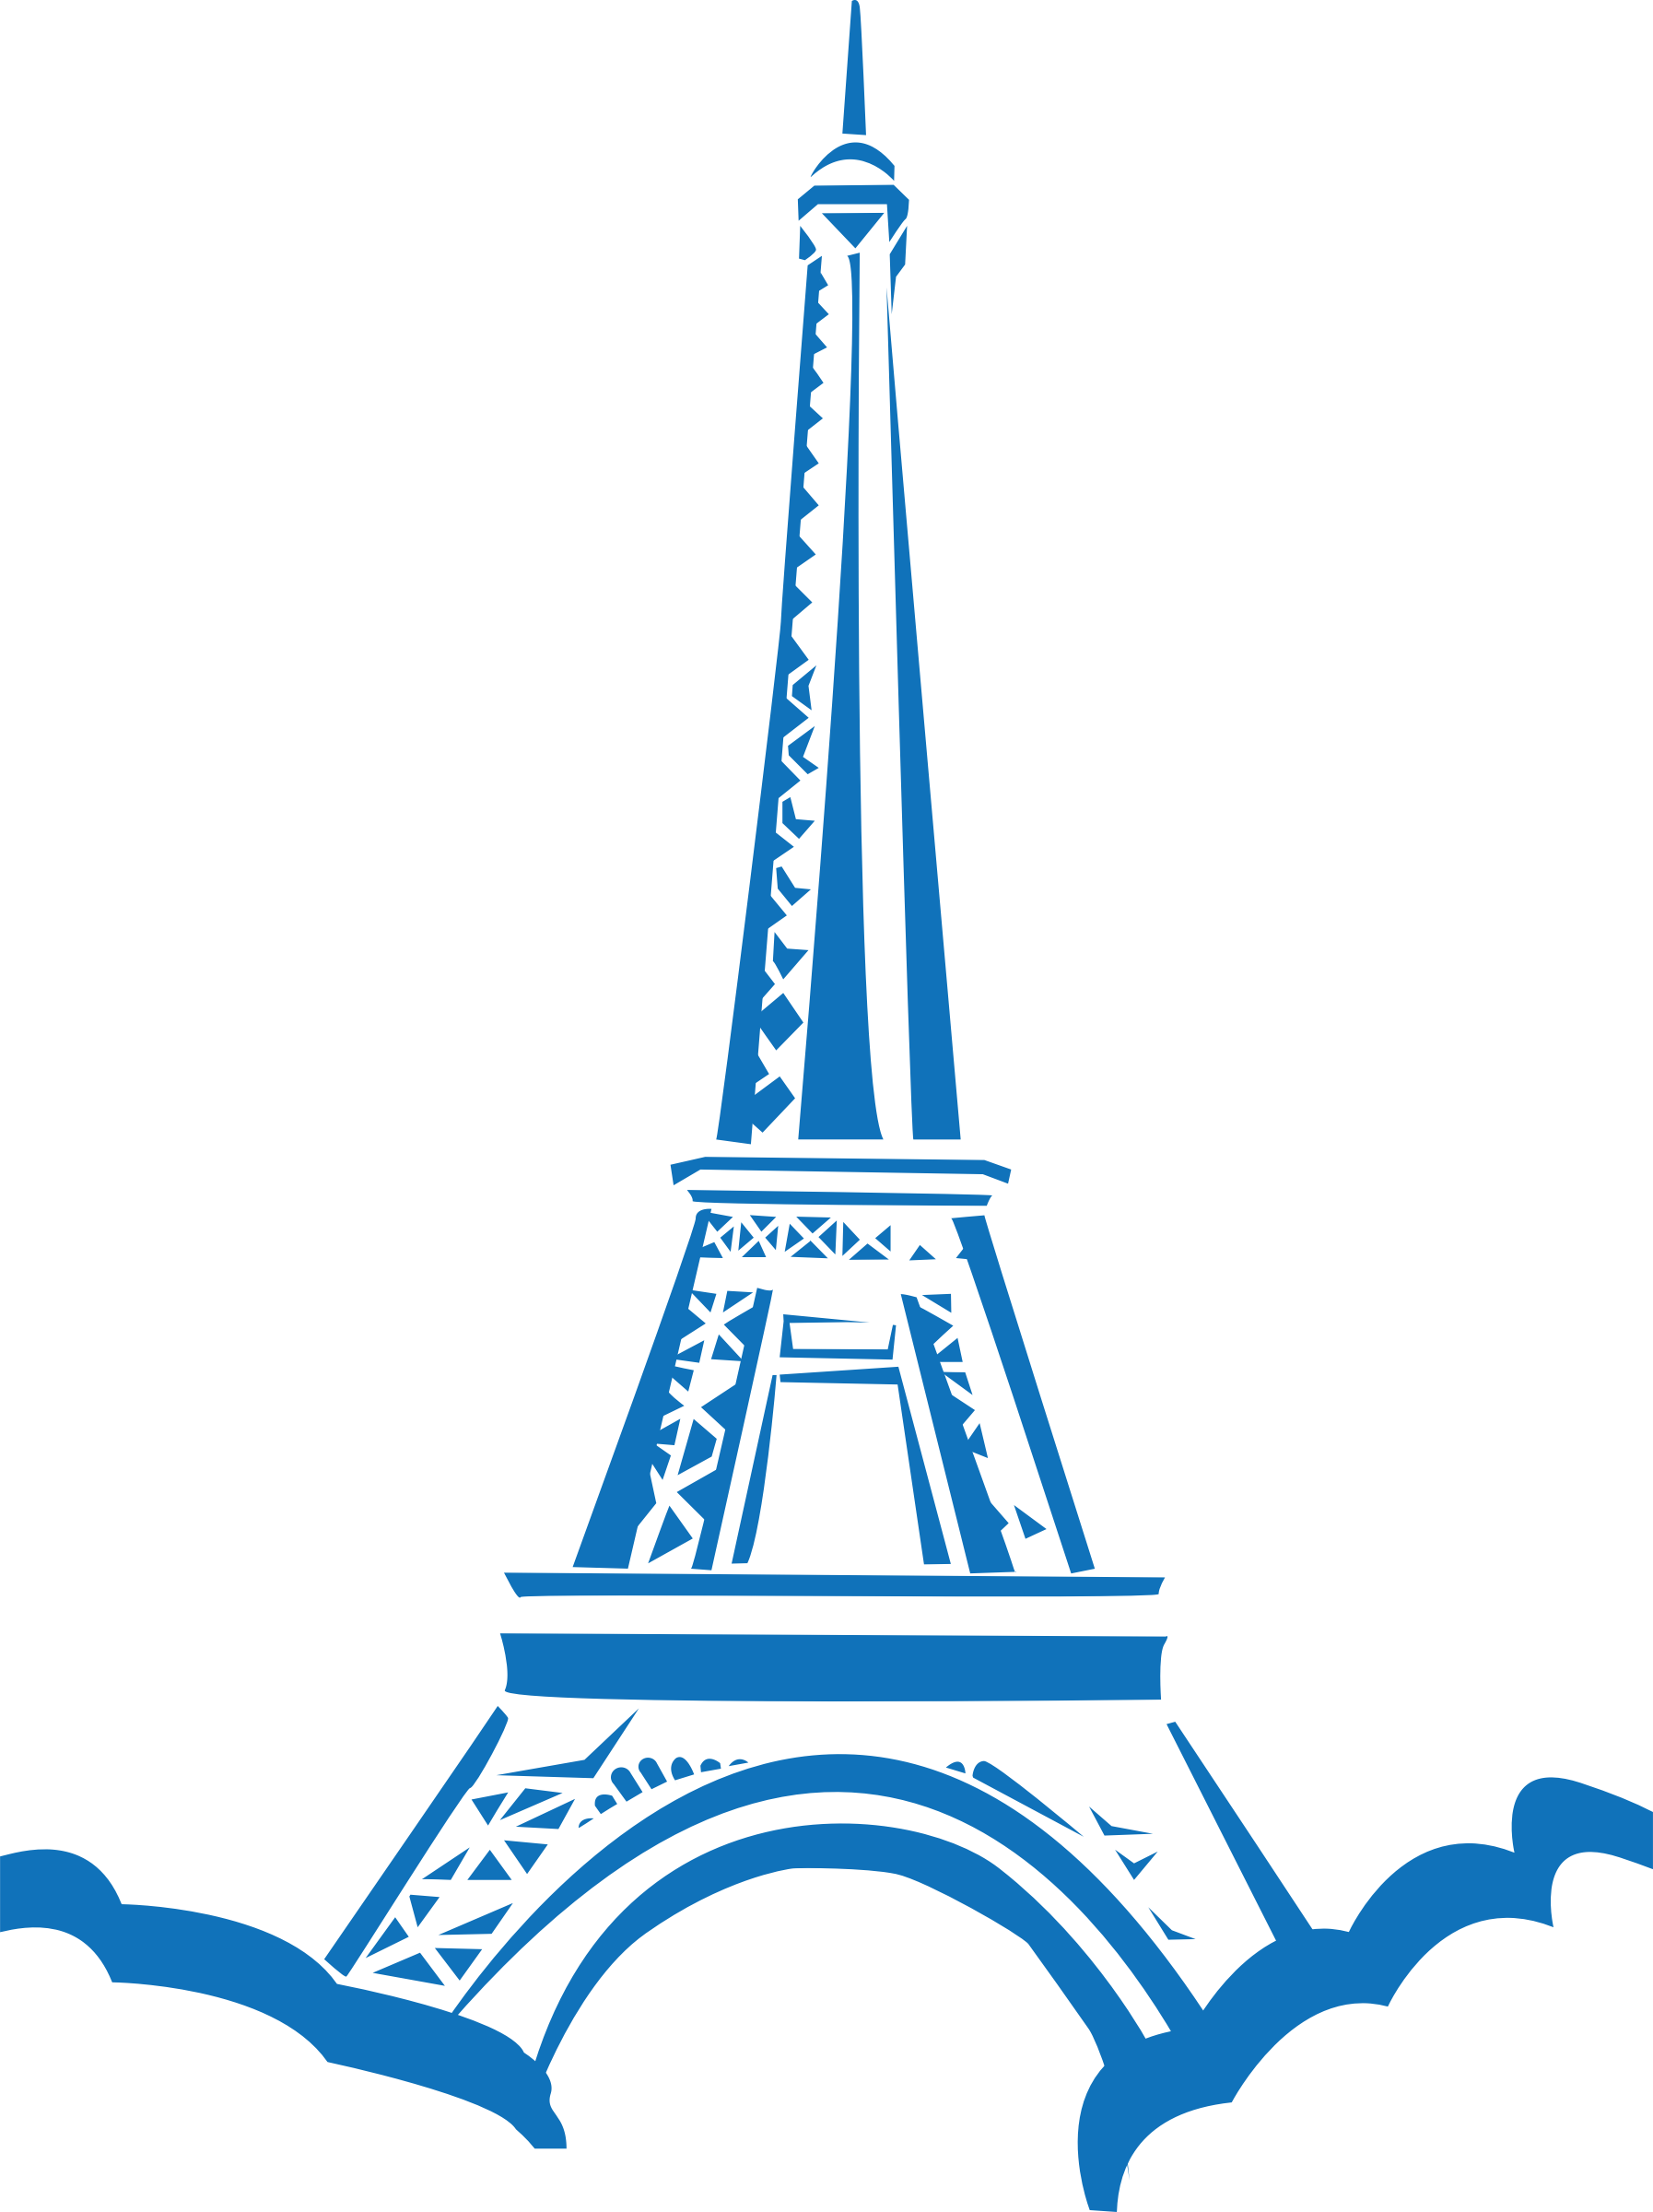 tower clipart svg